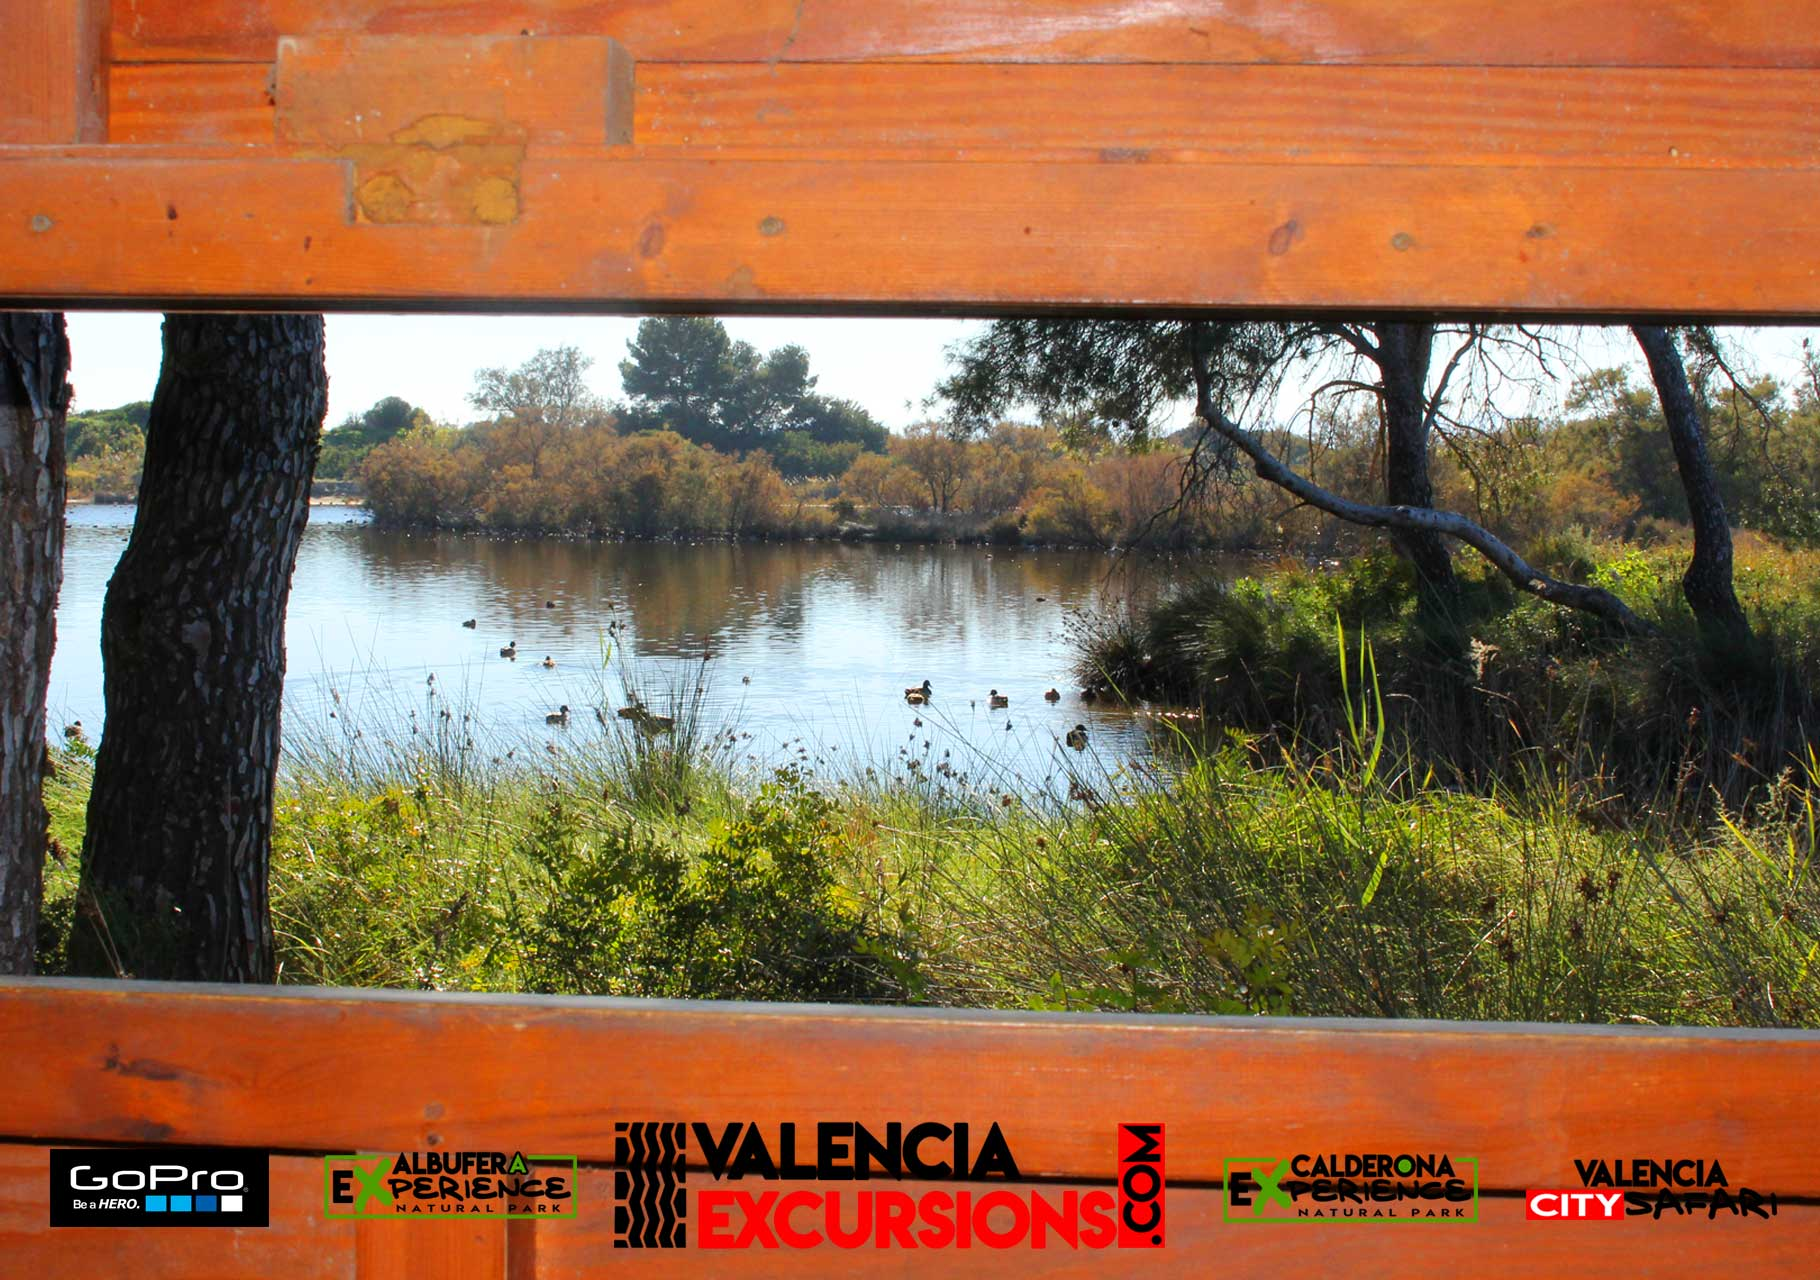 Birdwatching in Albufera Experience. Photos and Videos included with an awesome jeep tour in Valencia www.valenciaexcursions.com